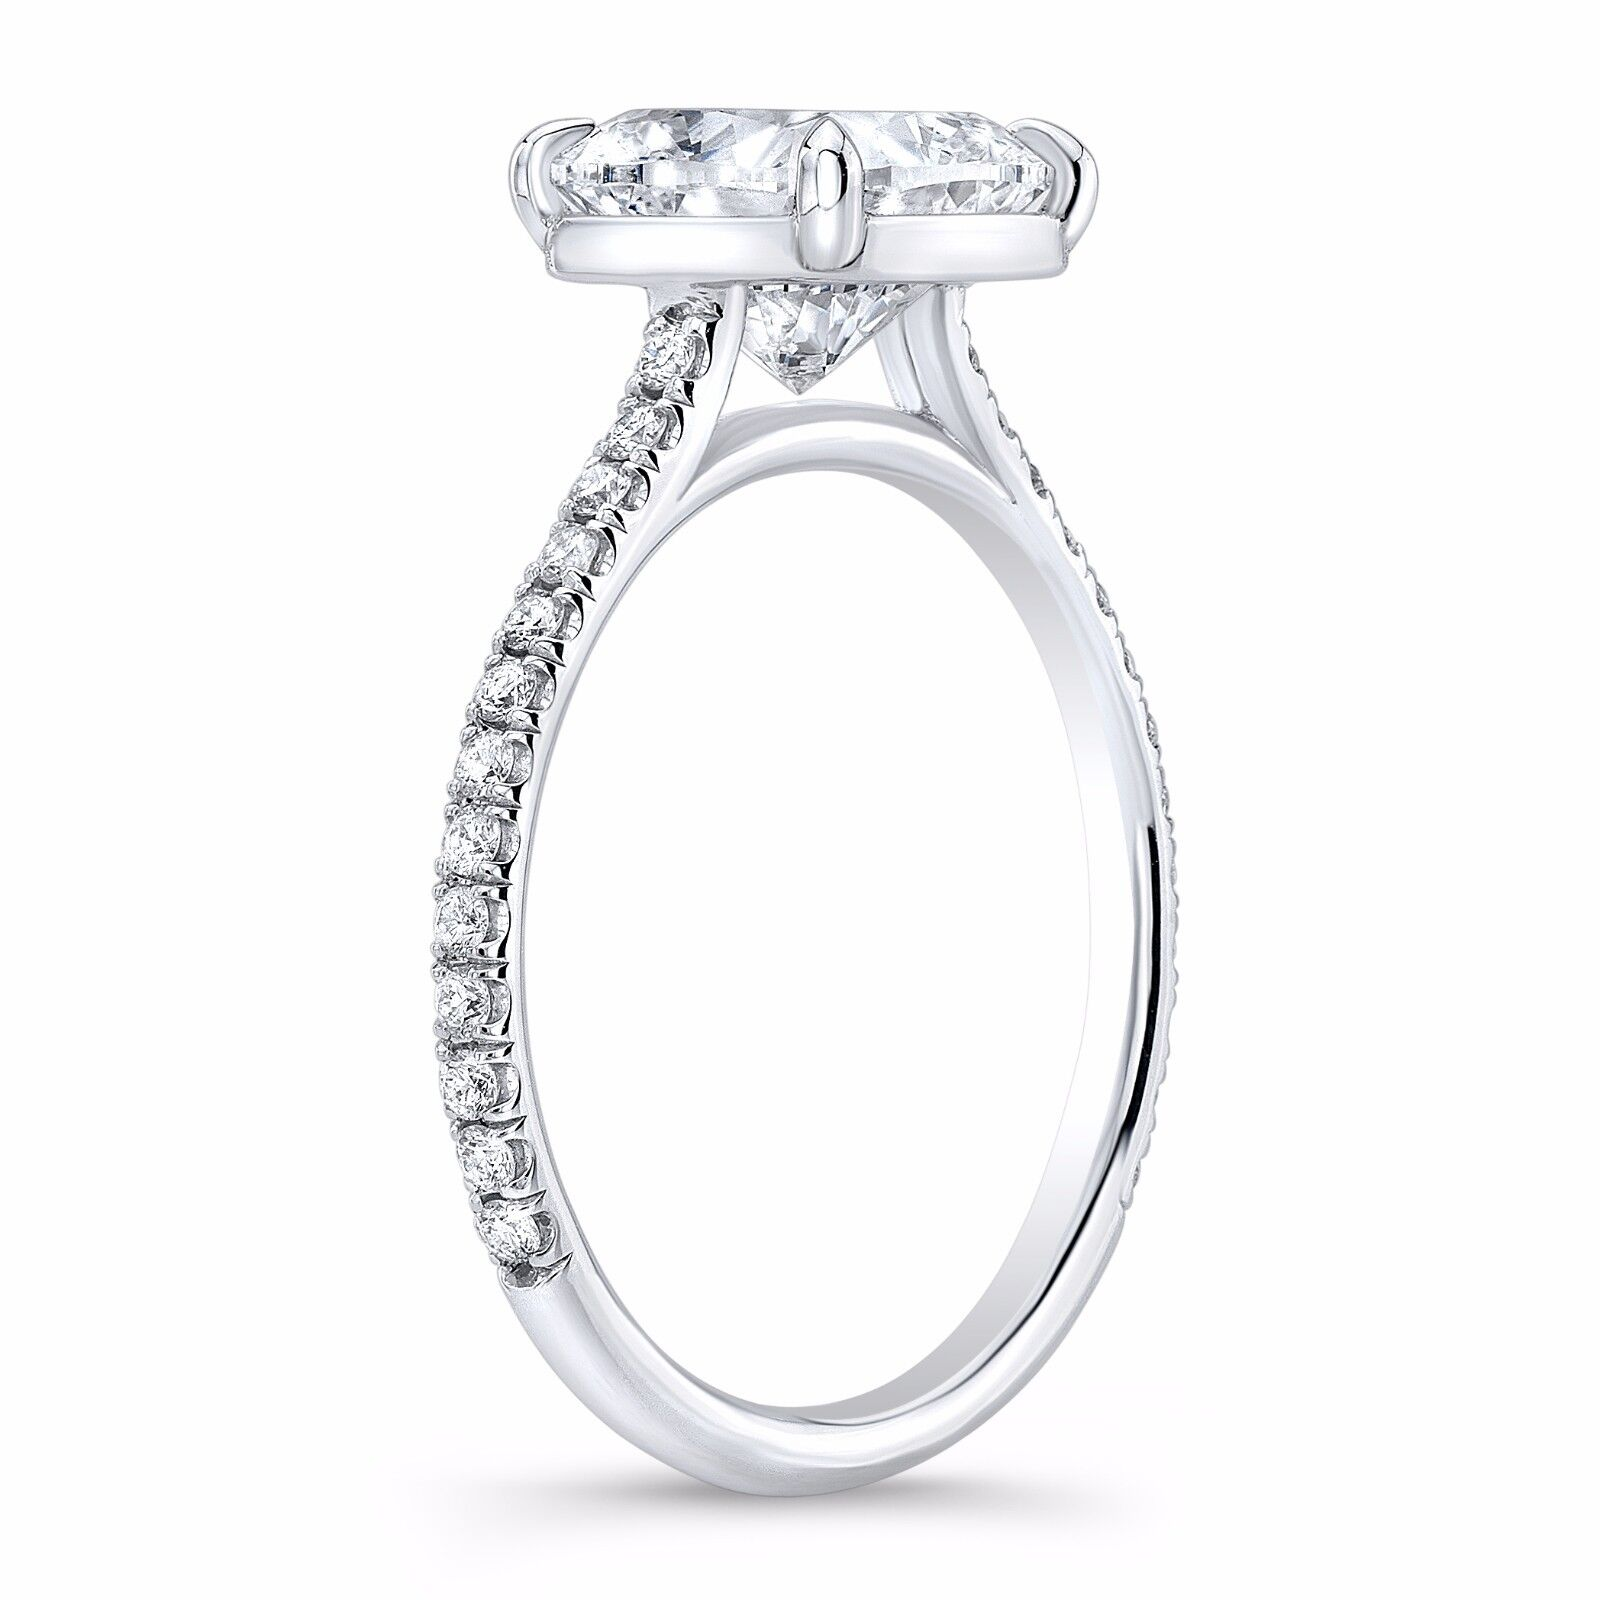 1.50ctw Natural Cushion Pave Diamond Engagement Ring - GIA Certified 2